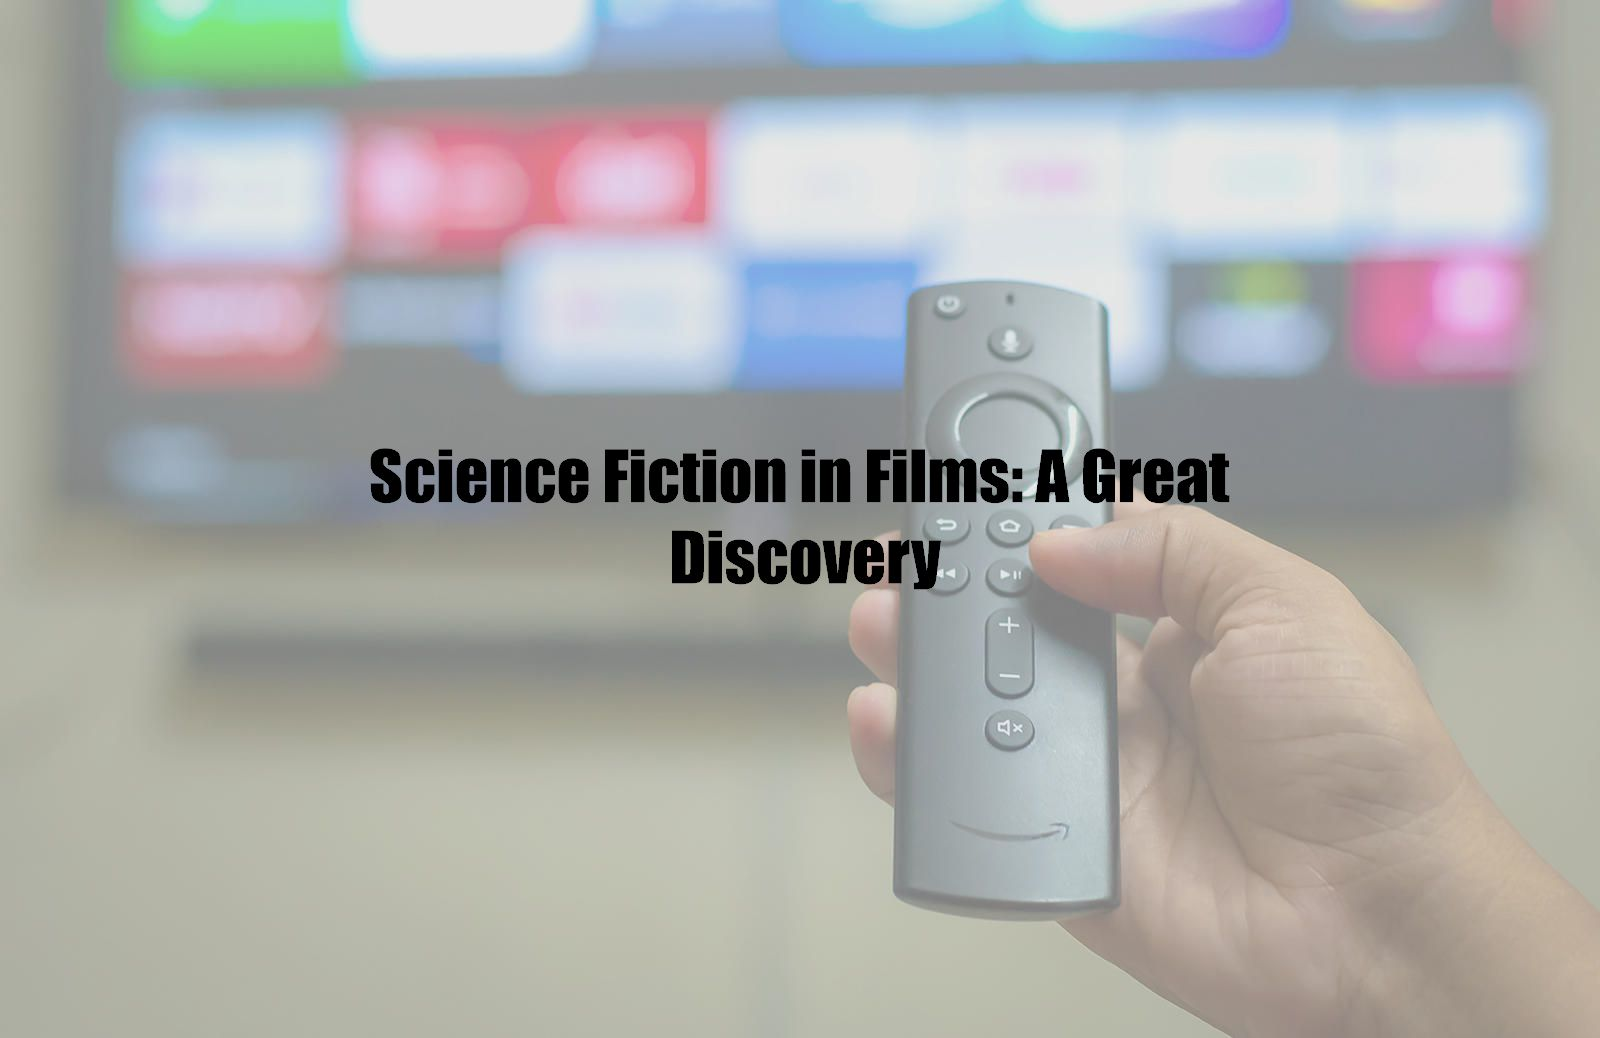 Science Fiction in Films: A Great Discovery